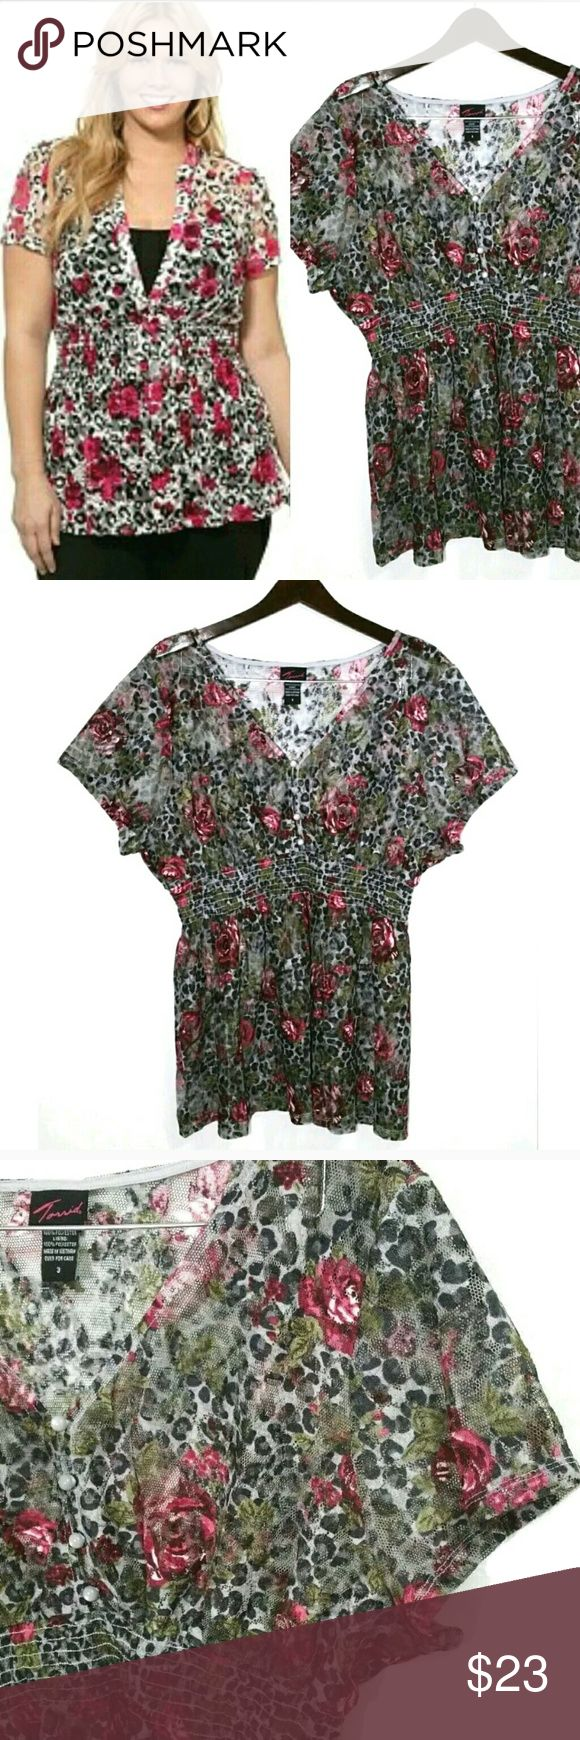 Torrid Floral Animal Print Lace Peplum 3 / 3X Torrid Floral Animal Print Lace Peplum  3 / 3X  Multicolor  Sheer lace with button up neck Smocked elastic waist  No flaws or defects refer to pictures  Measurements included in the pictures torrid Tops Blouses